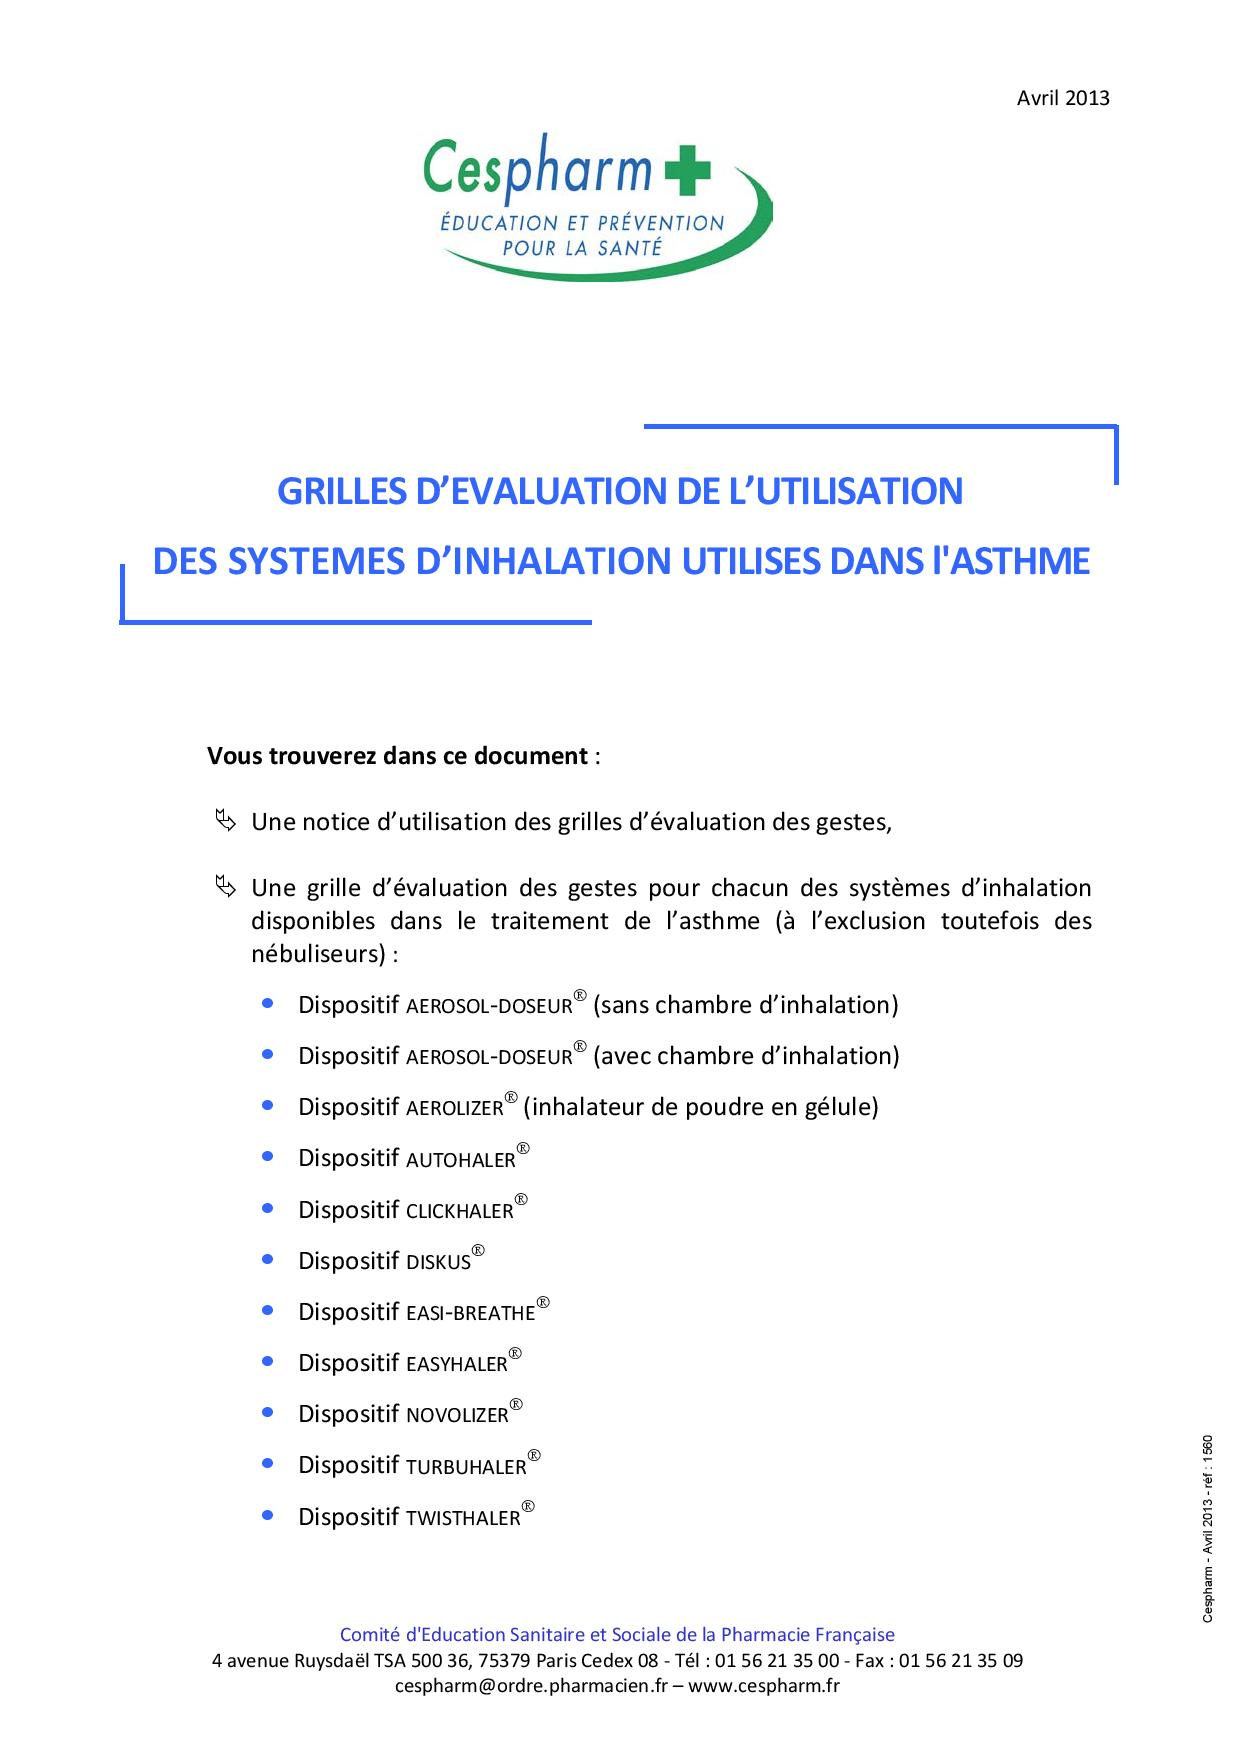 A 45 Grille_evaluation_systemes_inhalation-page-001.jpg